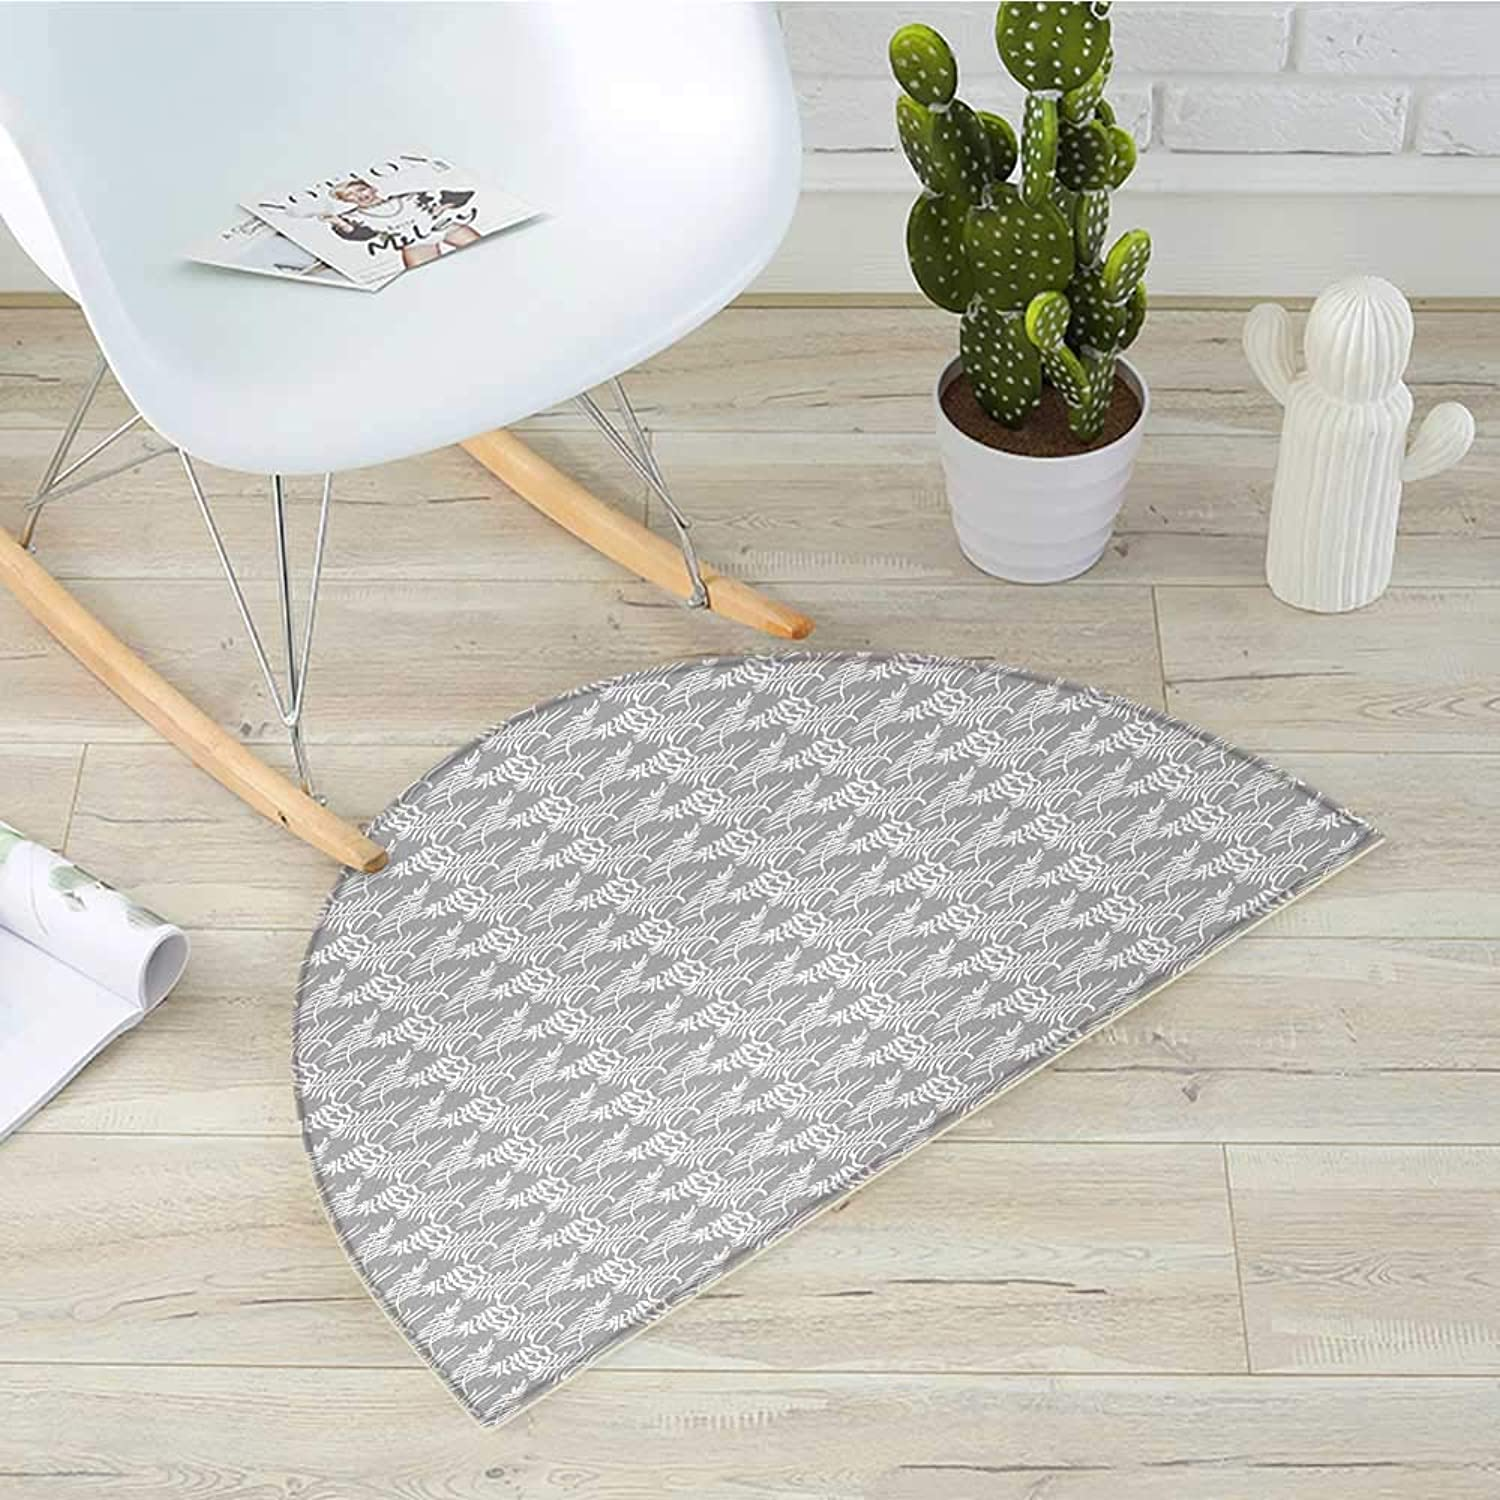 Leaves Semicircular CushionFoliage Silhouette with Greyscale Background Exotic Jungle Flora Composition Entry Door Mat H 31.5  xD 47.2  Pale Grey White